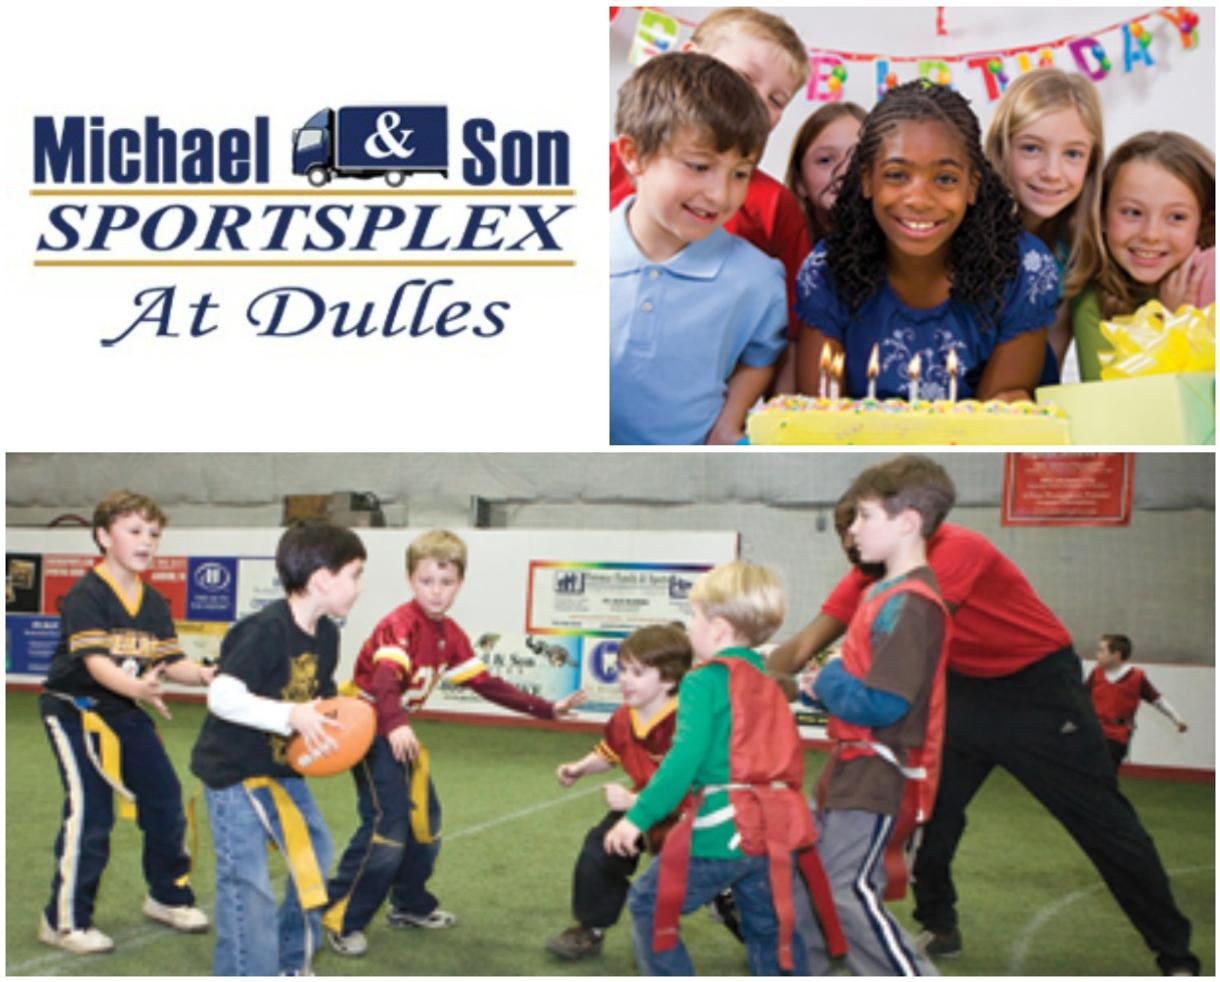 $112+ for Birthday Party Package at Michael & Son SportsPlex in Dulles (Up to 25% Off)